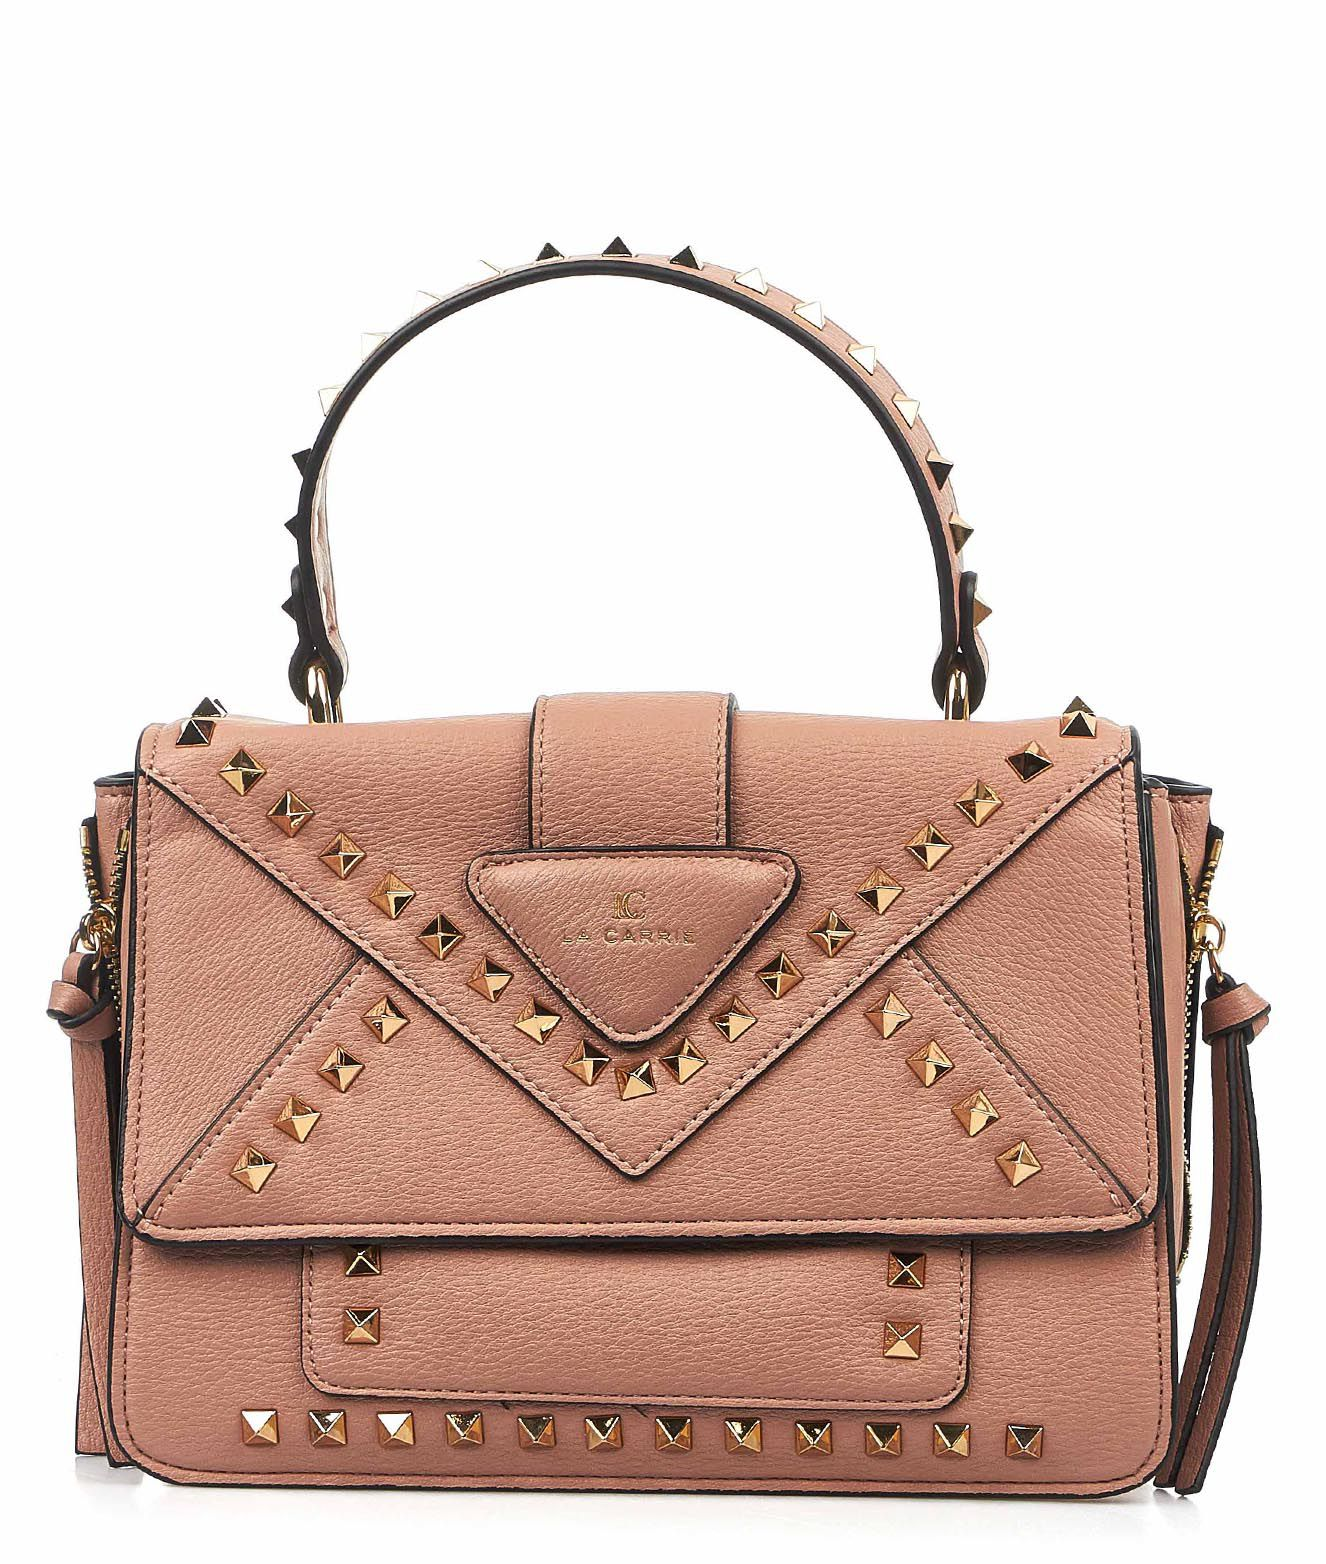 MOSCHINO Women/'s Bags Cross Body Rose Leather NIB Authentic